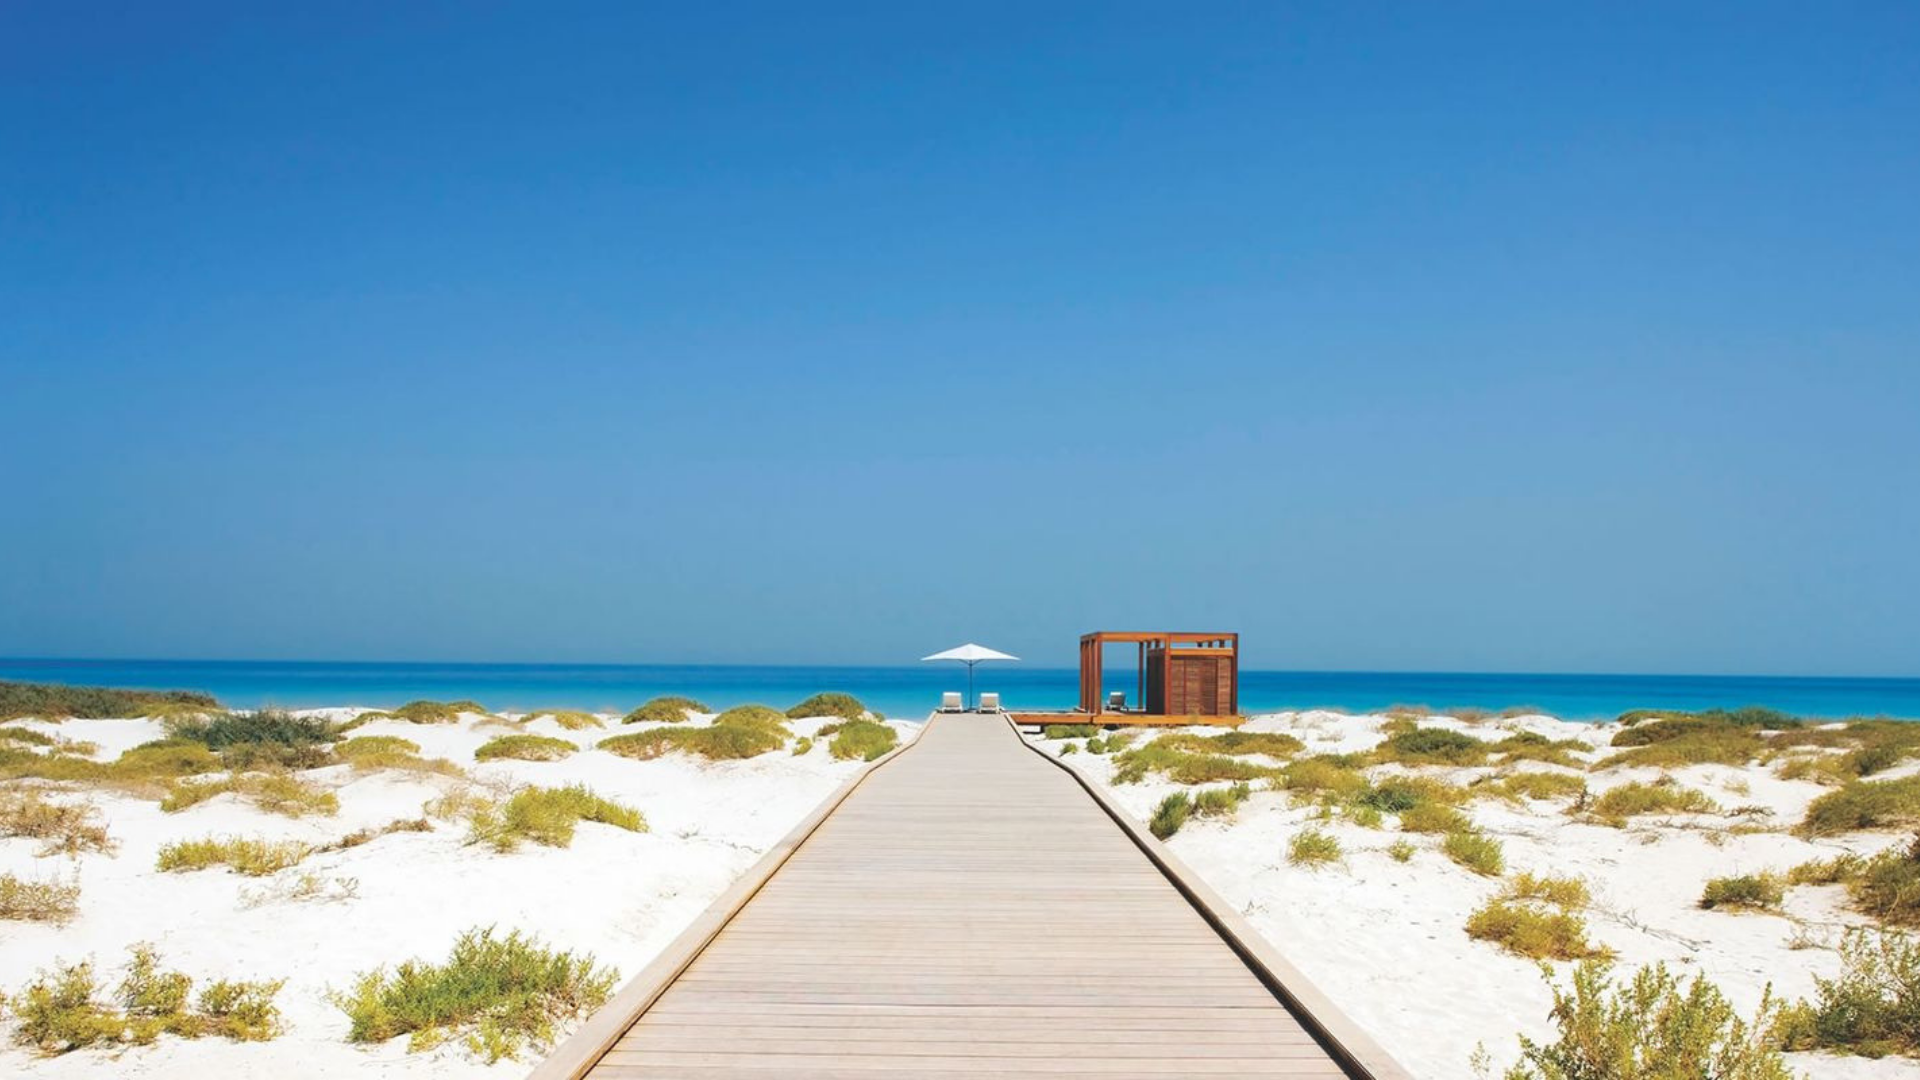 10-things-to-do-in-abu-dhabi